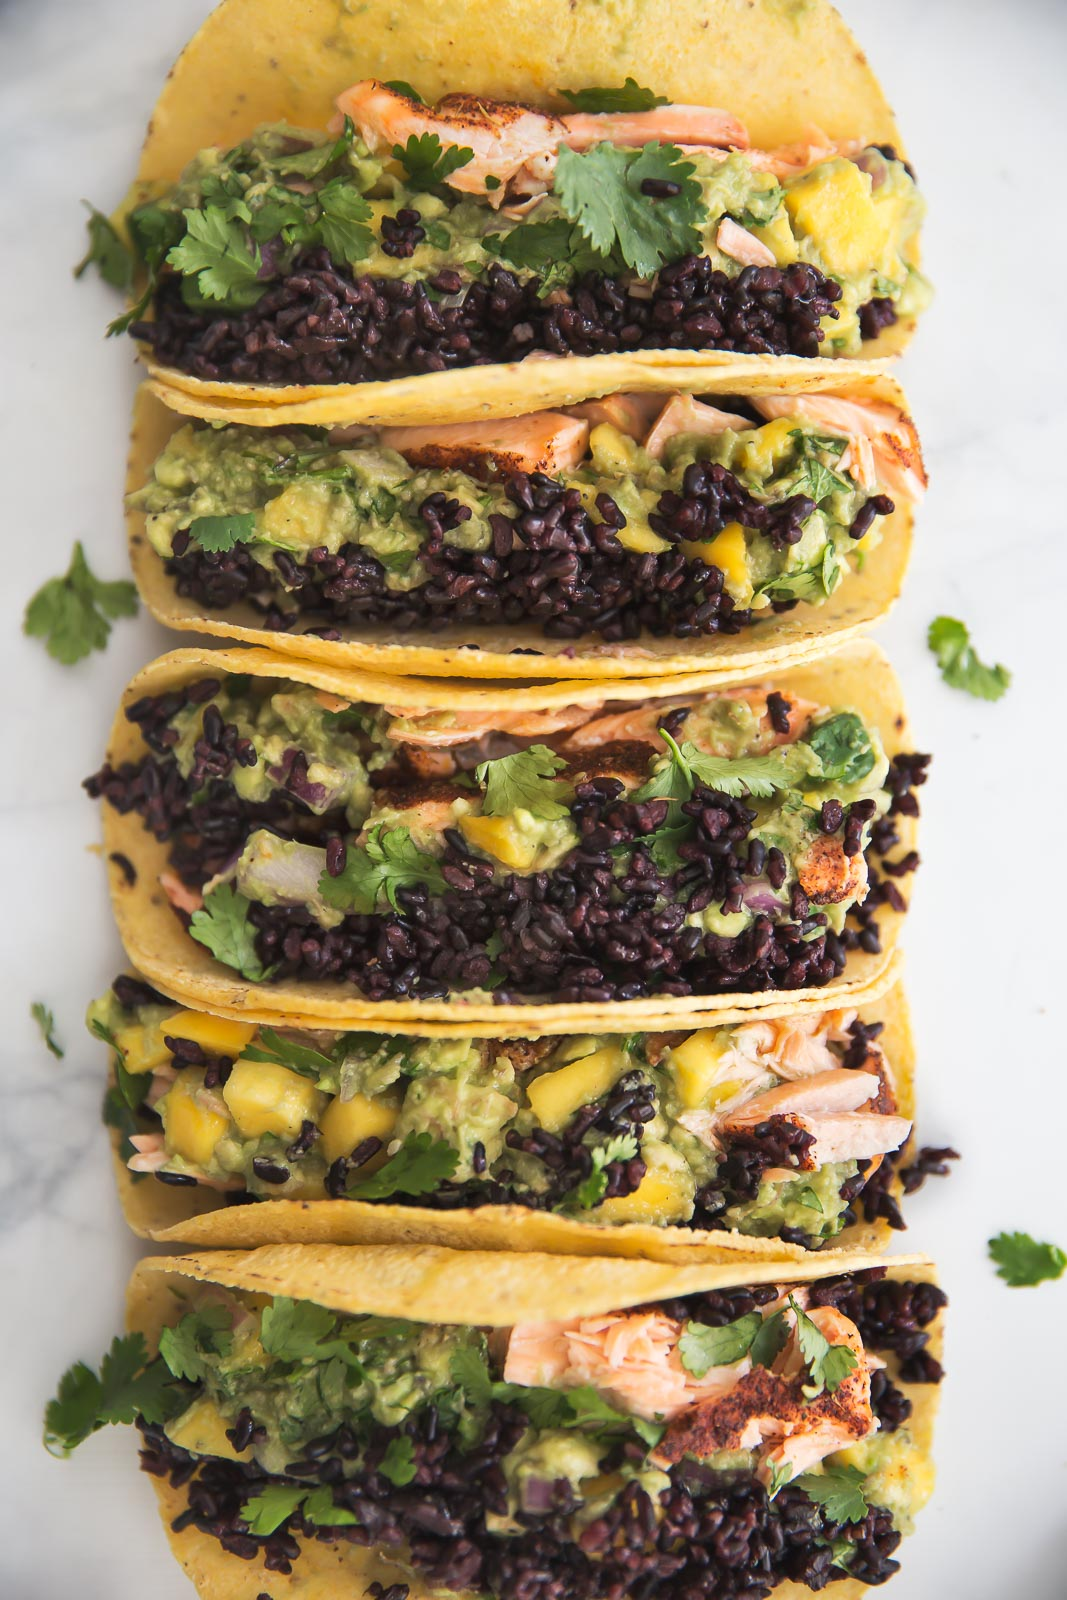 Salmon tacos with black rice and guacamole